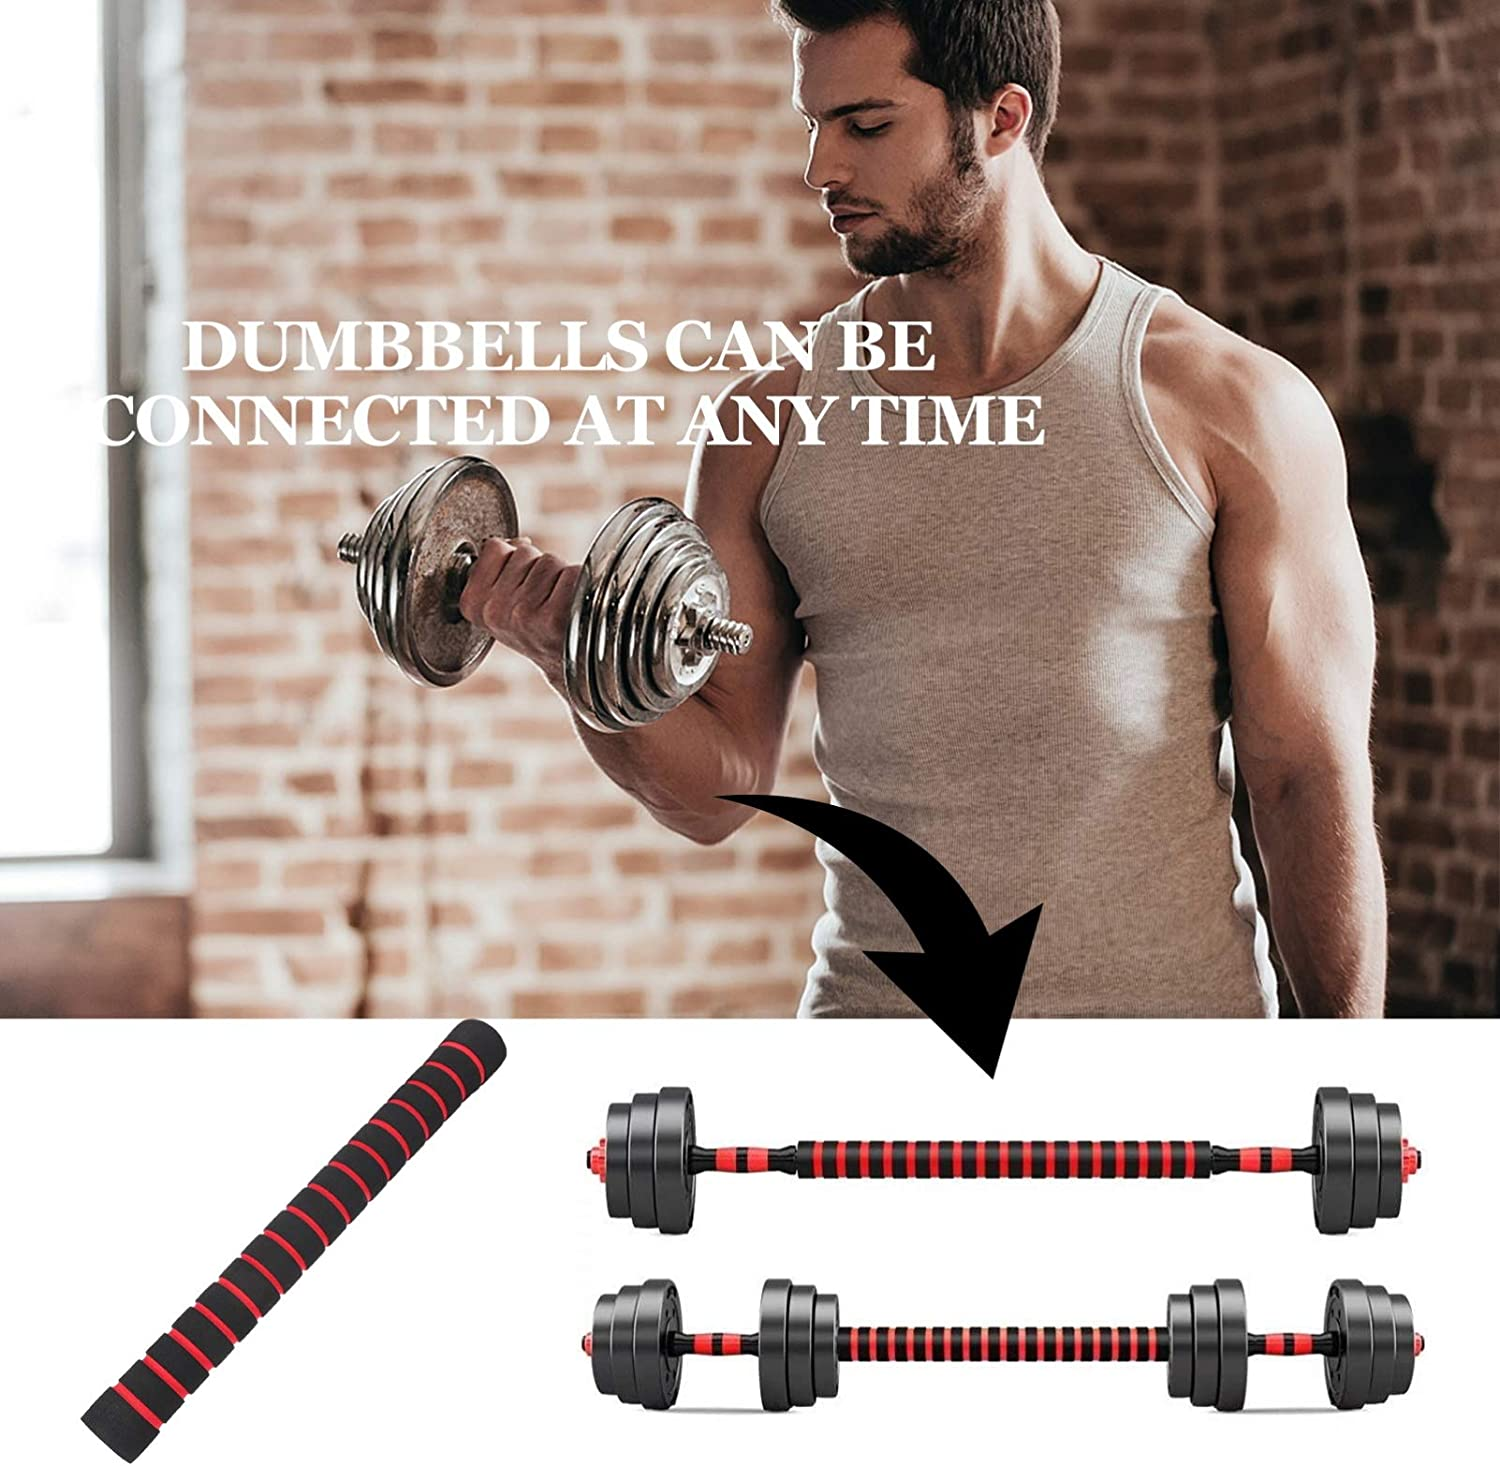 BESPORTBLE Dumbbell Connecting Rod Barbell Connector Bar Weightlifting Equipment Weight Connector Bar Weightlifting Equipment Accessories Dumbbell Bar Connector for Home Fitness Training